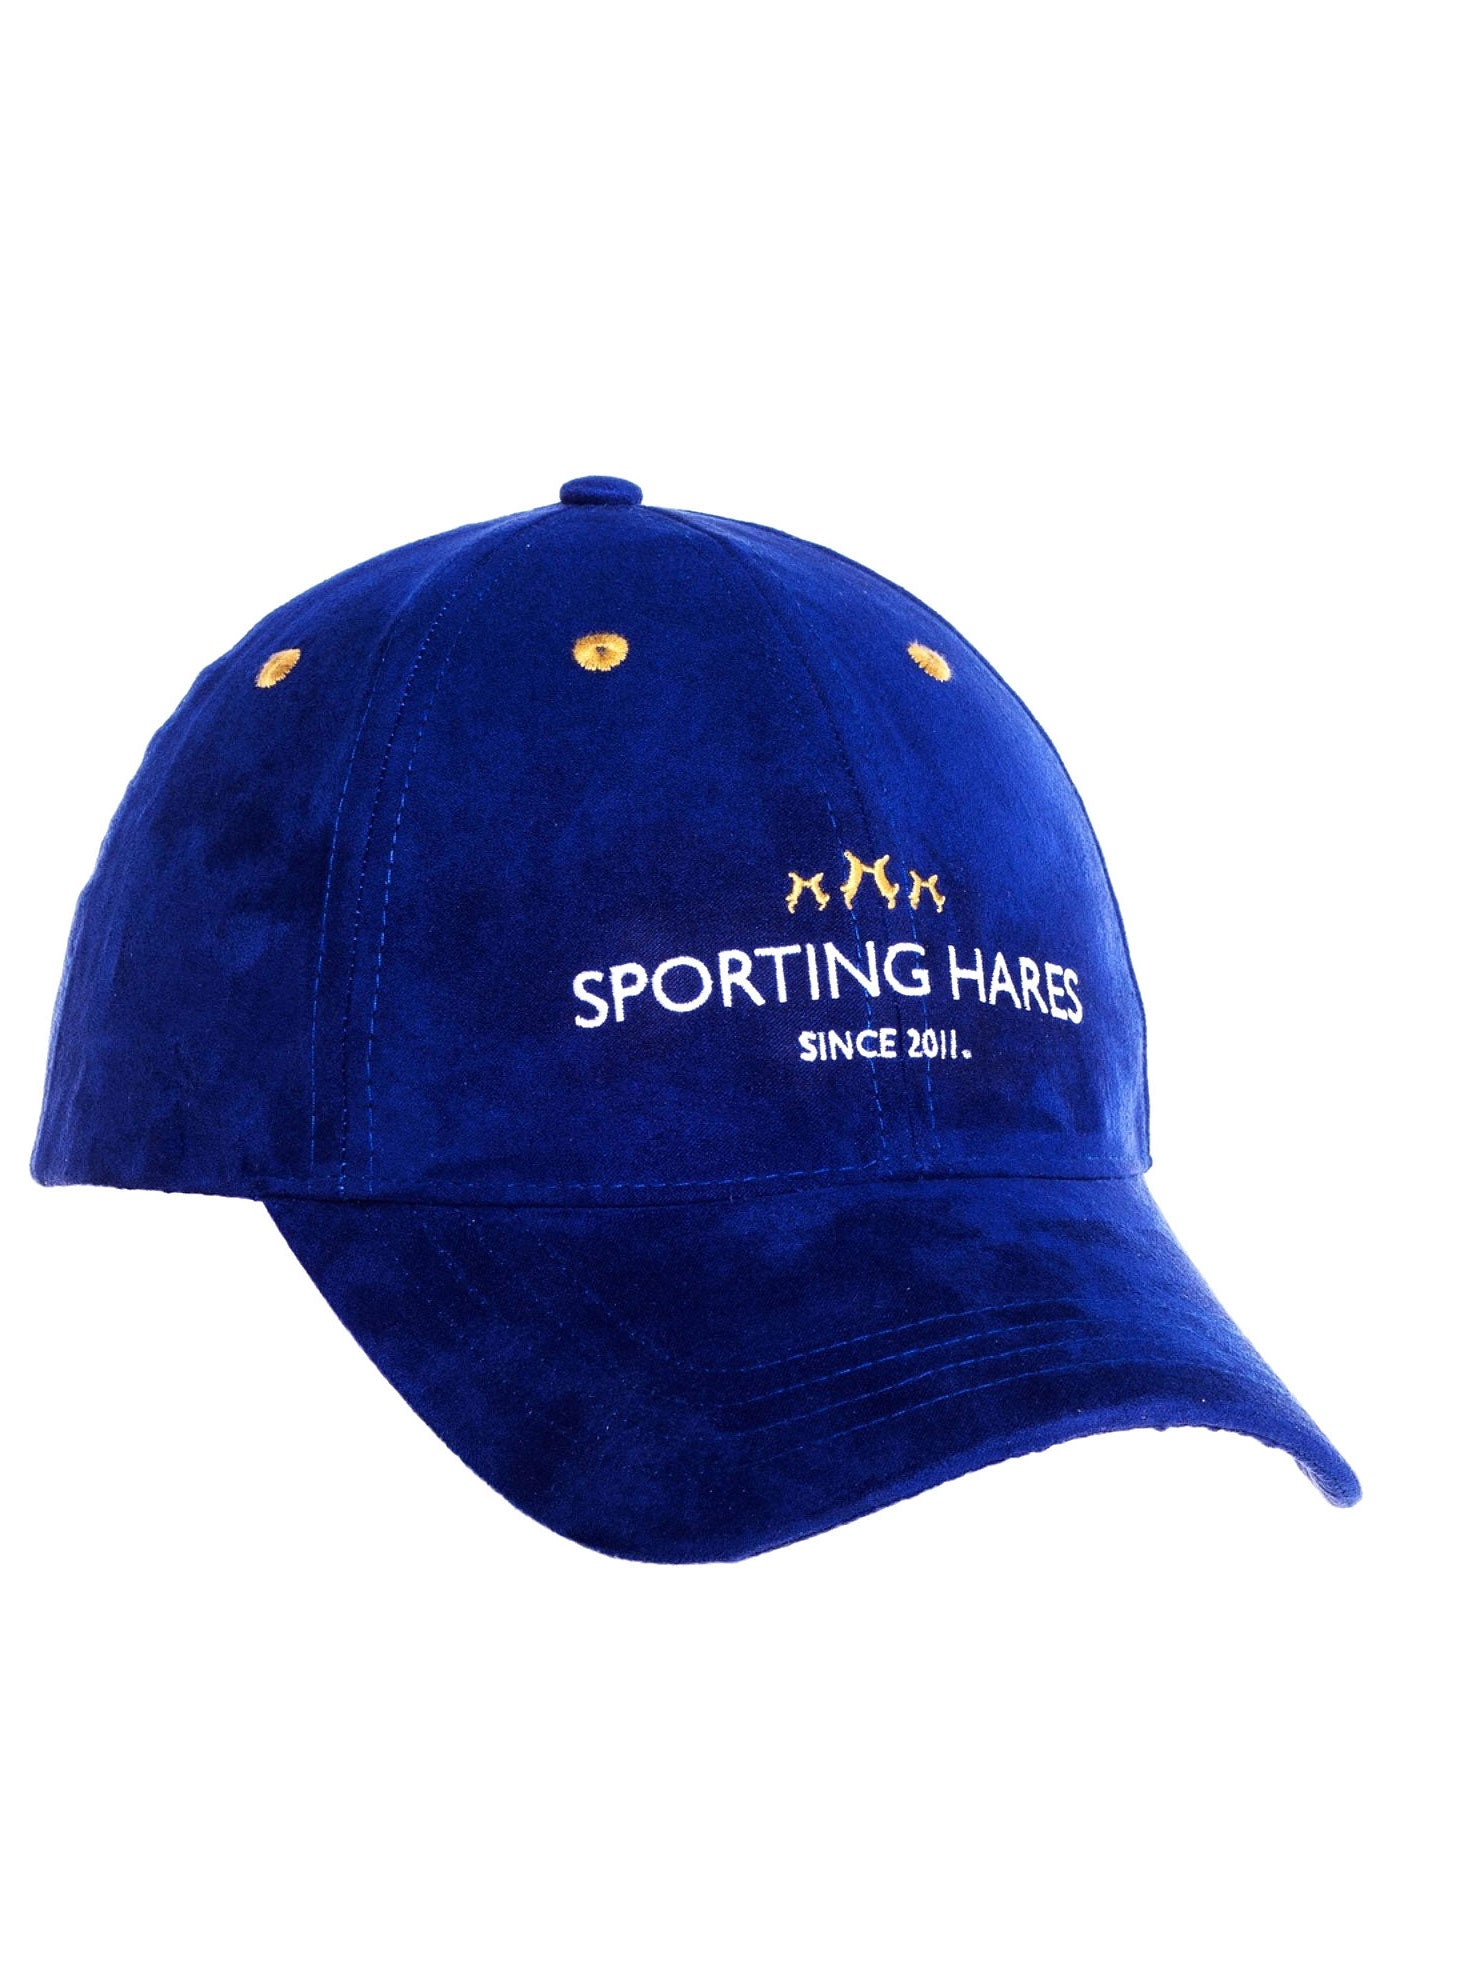 Sporting Hares Limited Edition Collection Cap